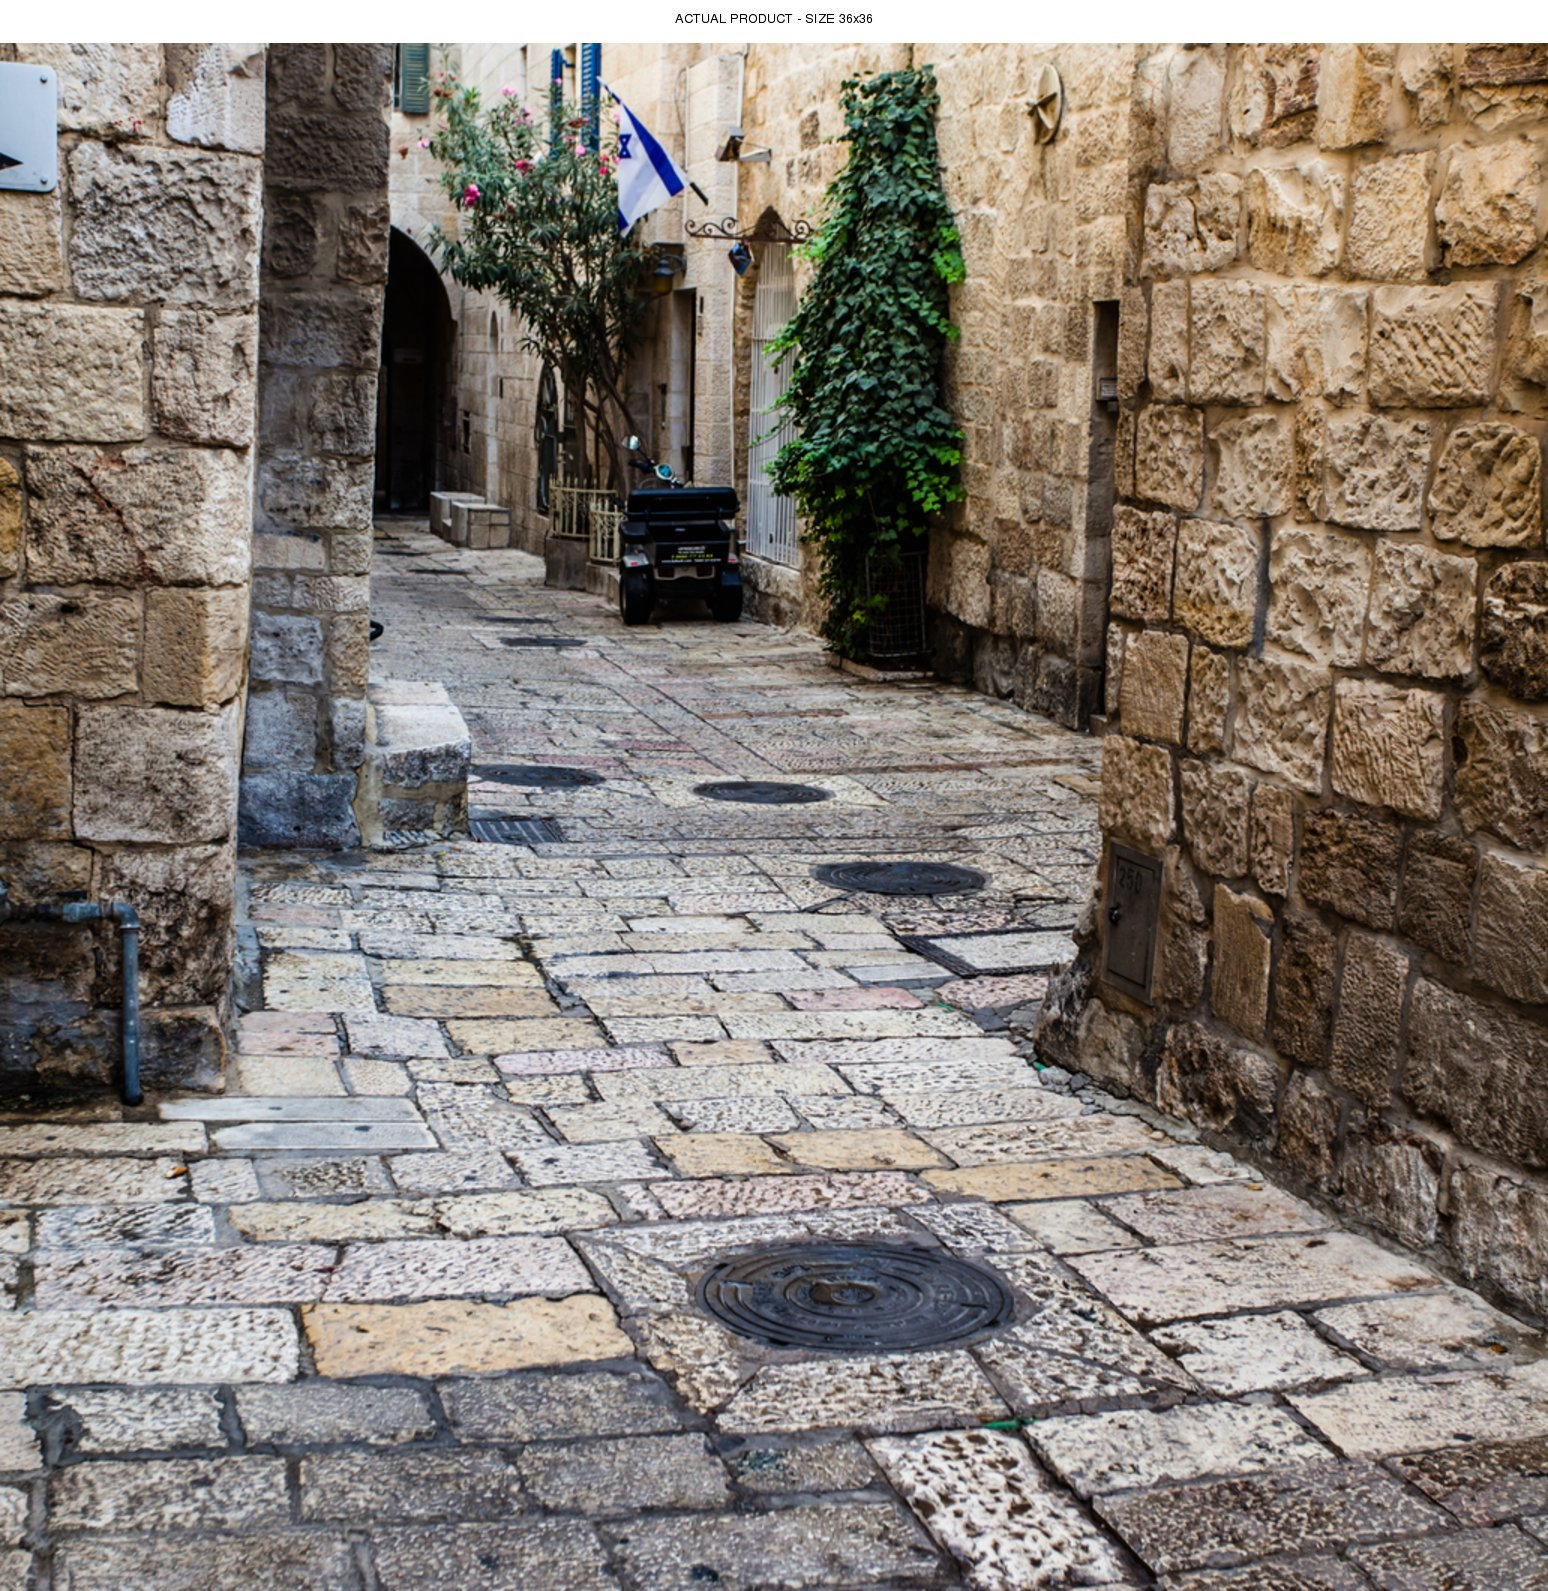 Windowpix 36x36 Inch Decorative Static Cling Window Film Jerusalem Old City Streets Printed on Clear for Window Glass Panels. UV Protection, Energy Saving.